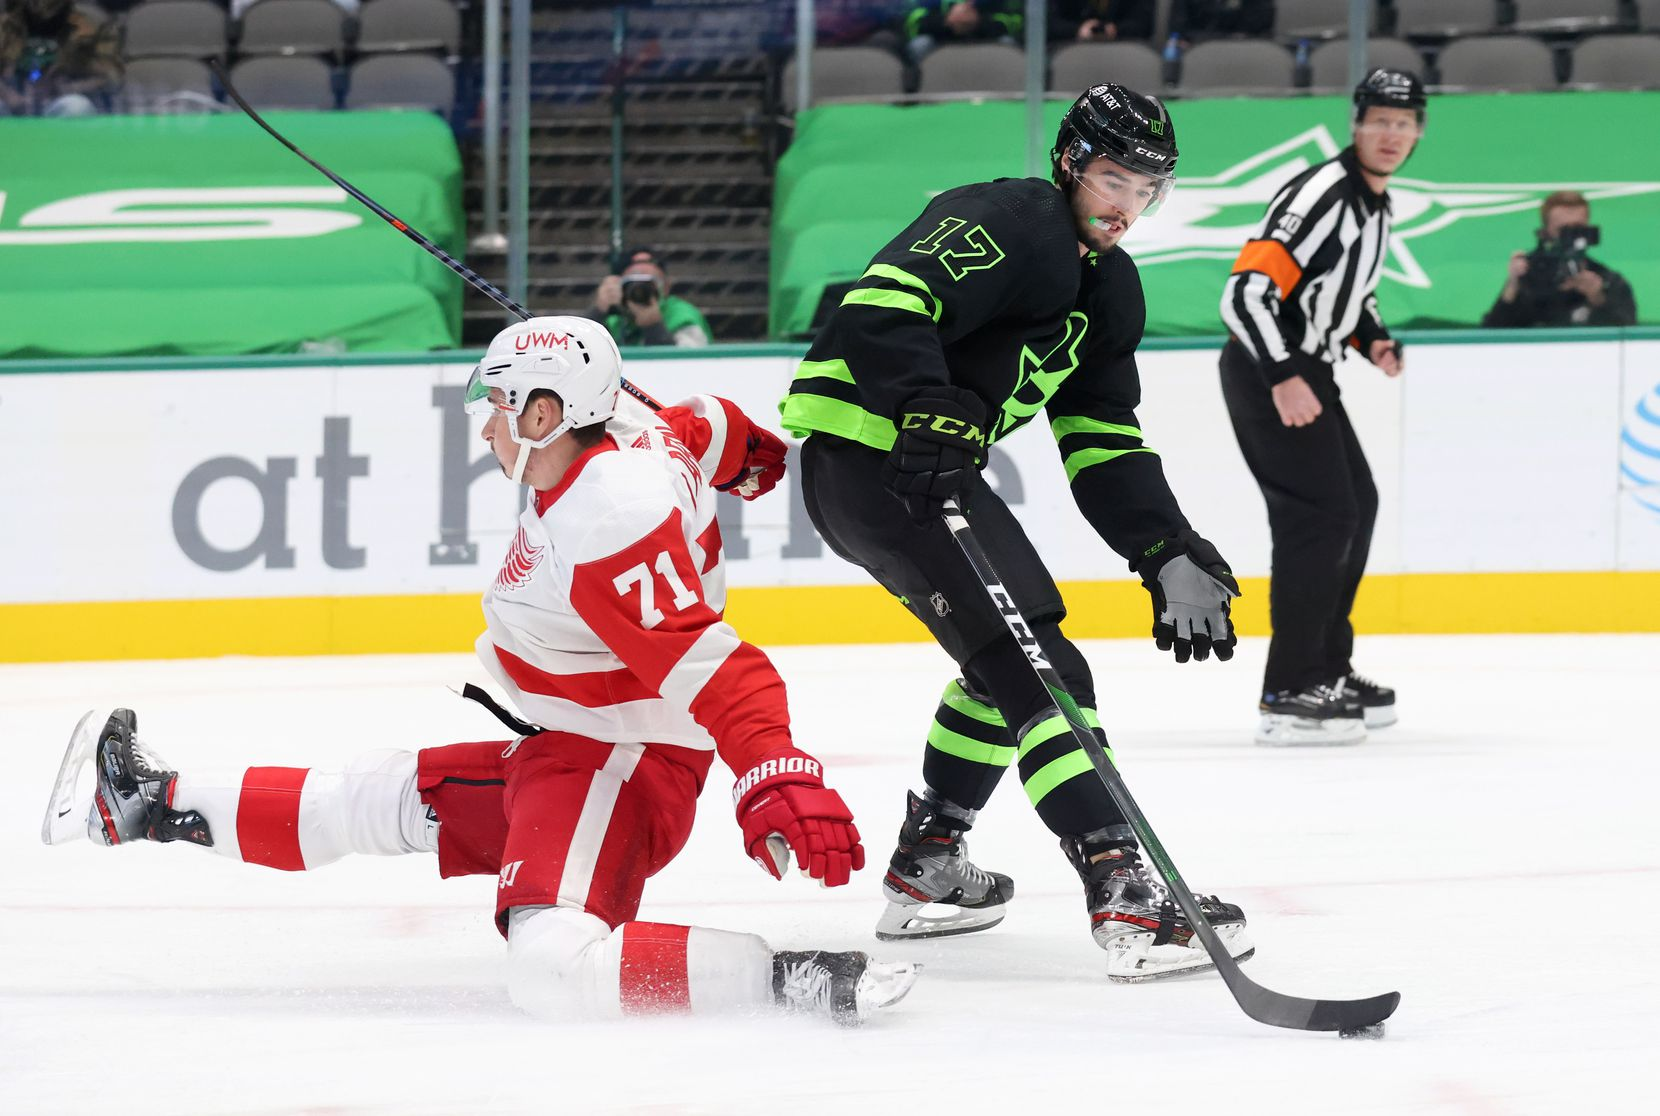 Dallas Stars right wing Nicholas Caamano (17) gets by Detroit Red Wings center Dylan Larkin (71) as he falls before taking a shot on goal during the first period of play at American Airlines Center on Thursday, January 28, 2021in Dallas. (Vernon Bryant/The Dallas Morning News)